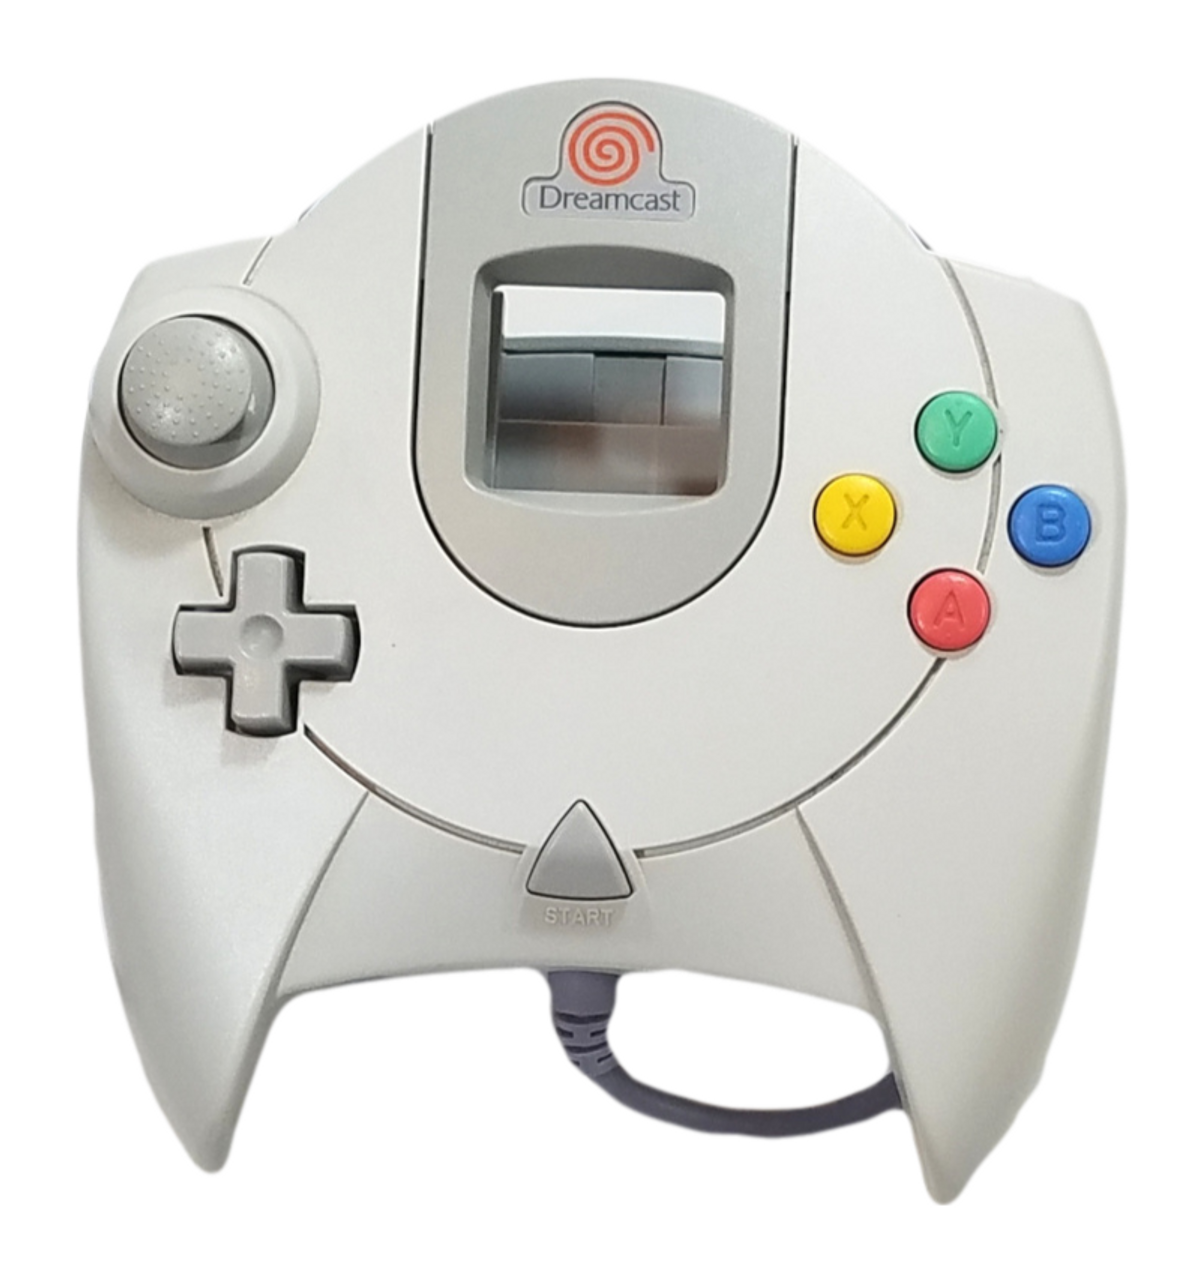 AEY18_-_Sega_Dreamcast_Controller_-_Gray_-_HKT-7700_-_revised_802x853__72134.1567020020.png?c=2?imbypass=on